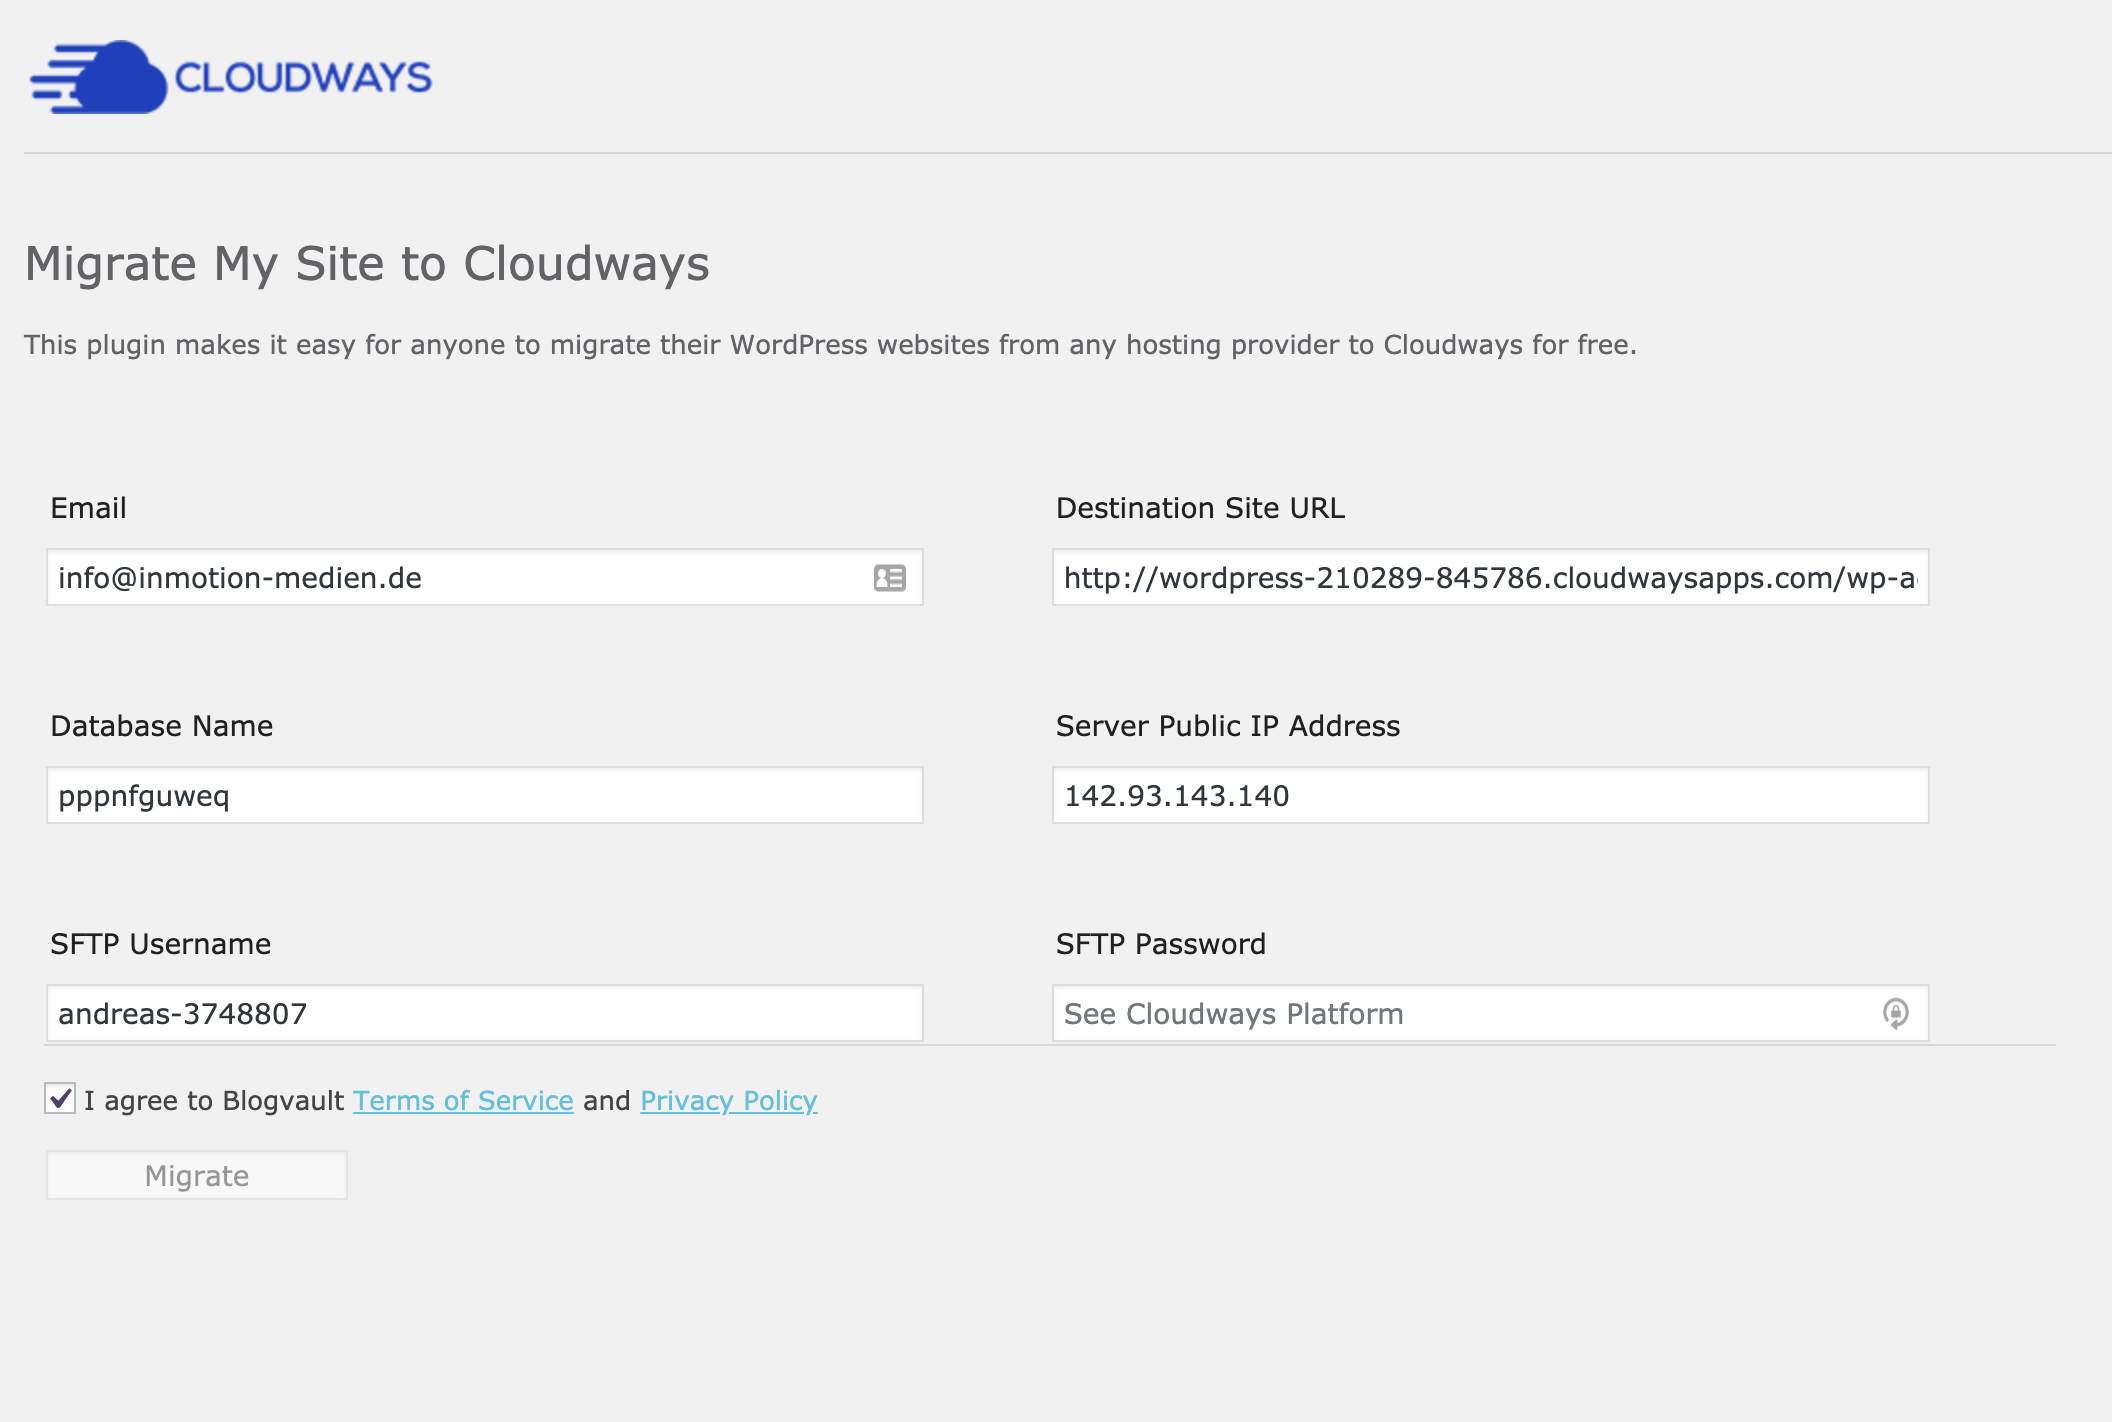 Cloudways-Form.png